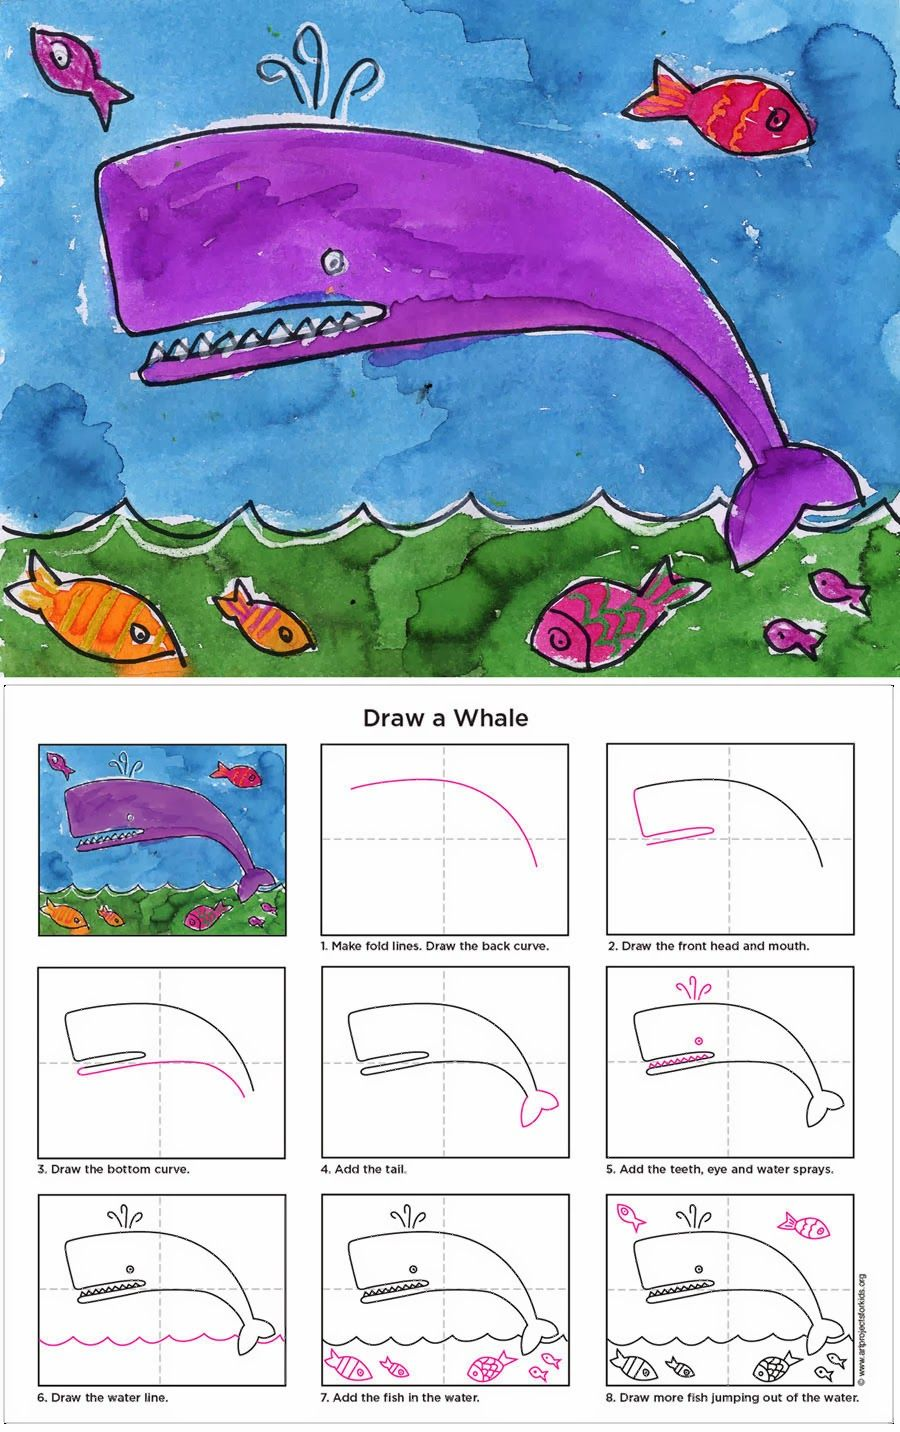 How to Draw a Whale Tutorial - ART PROJECTS FOR KIDS